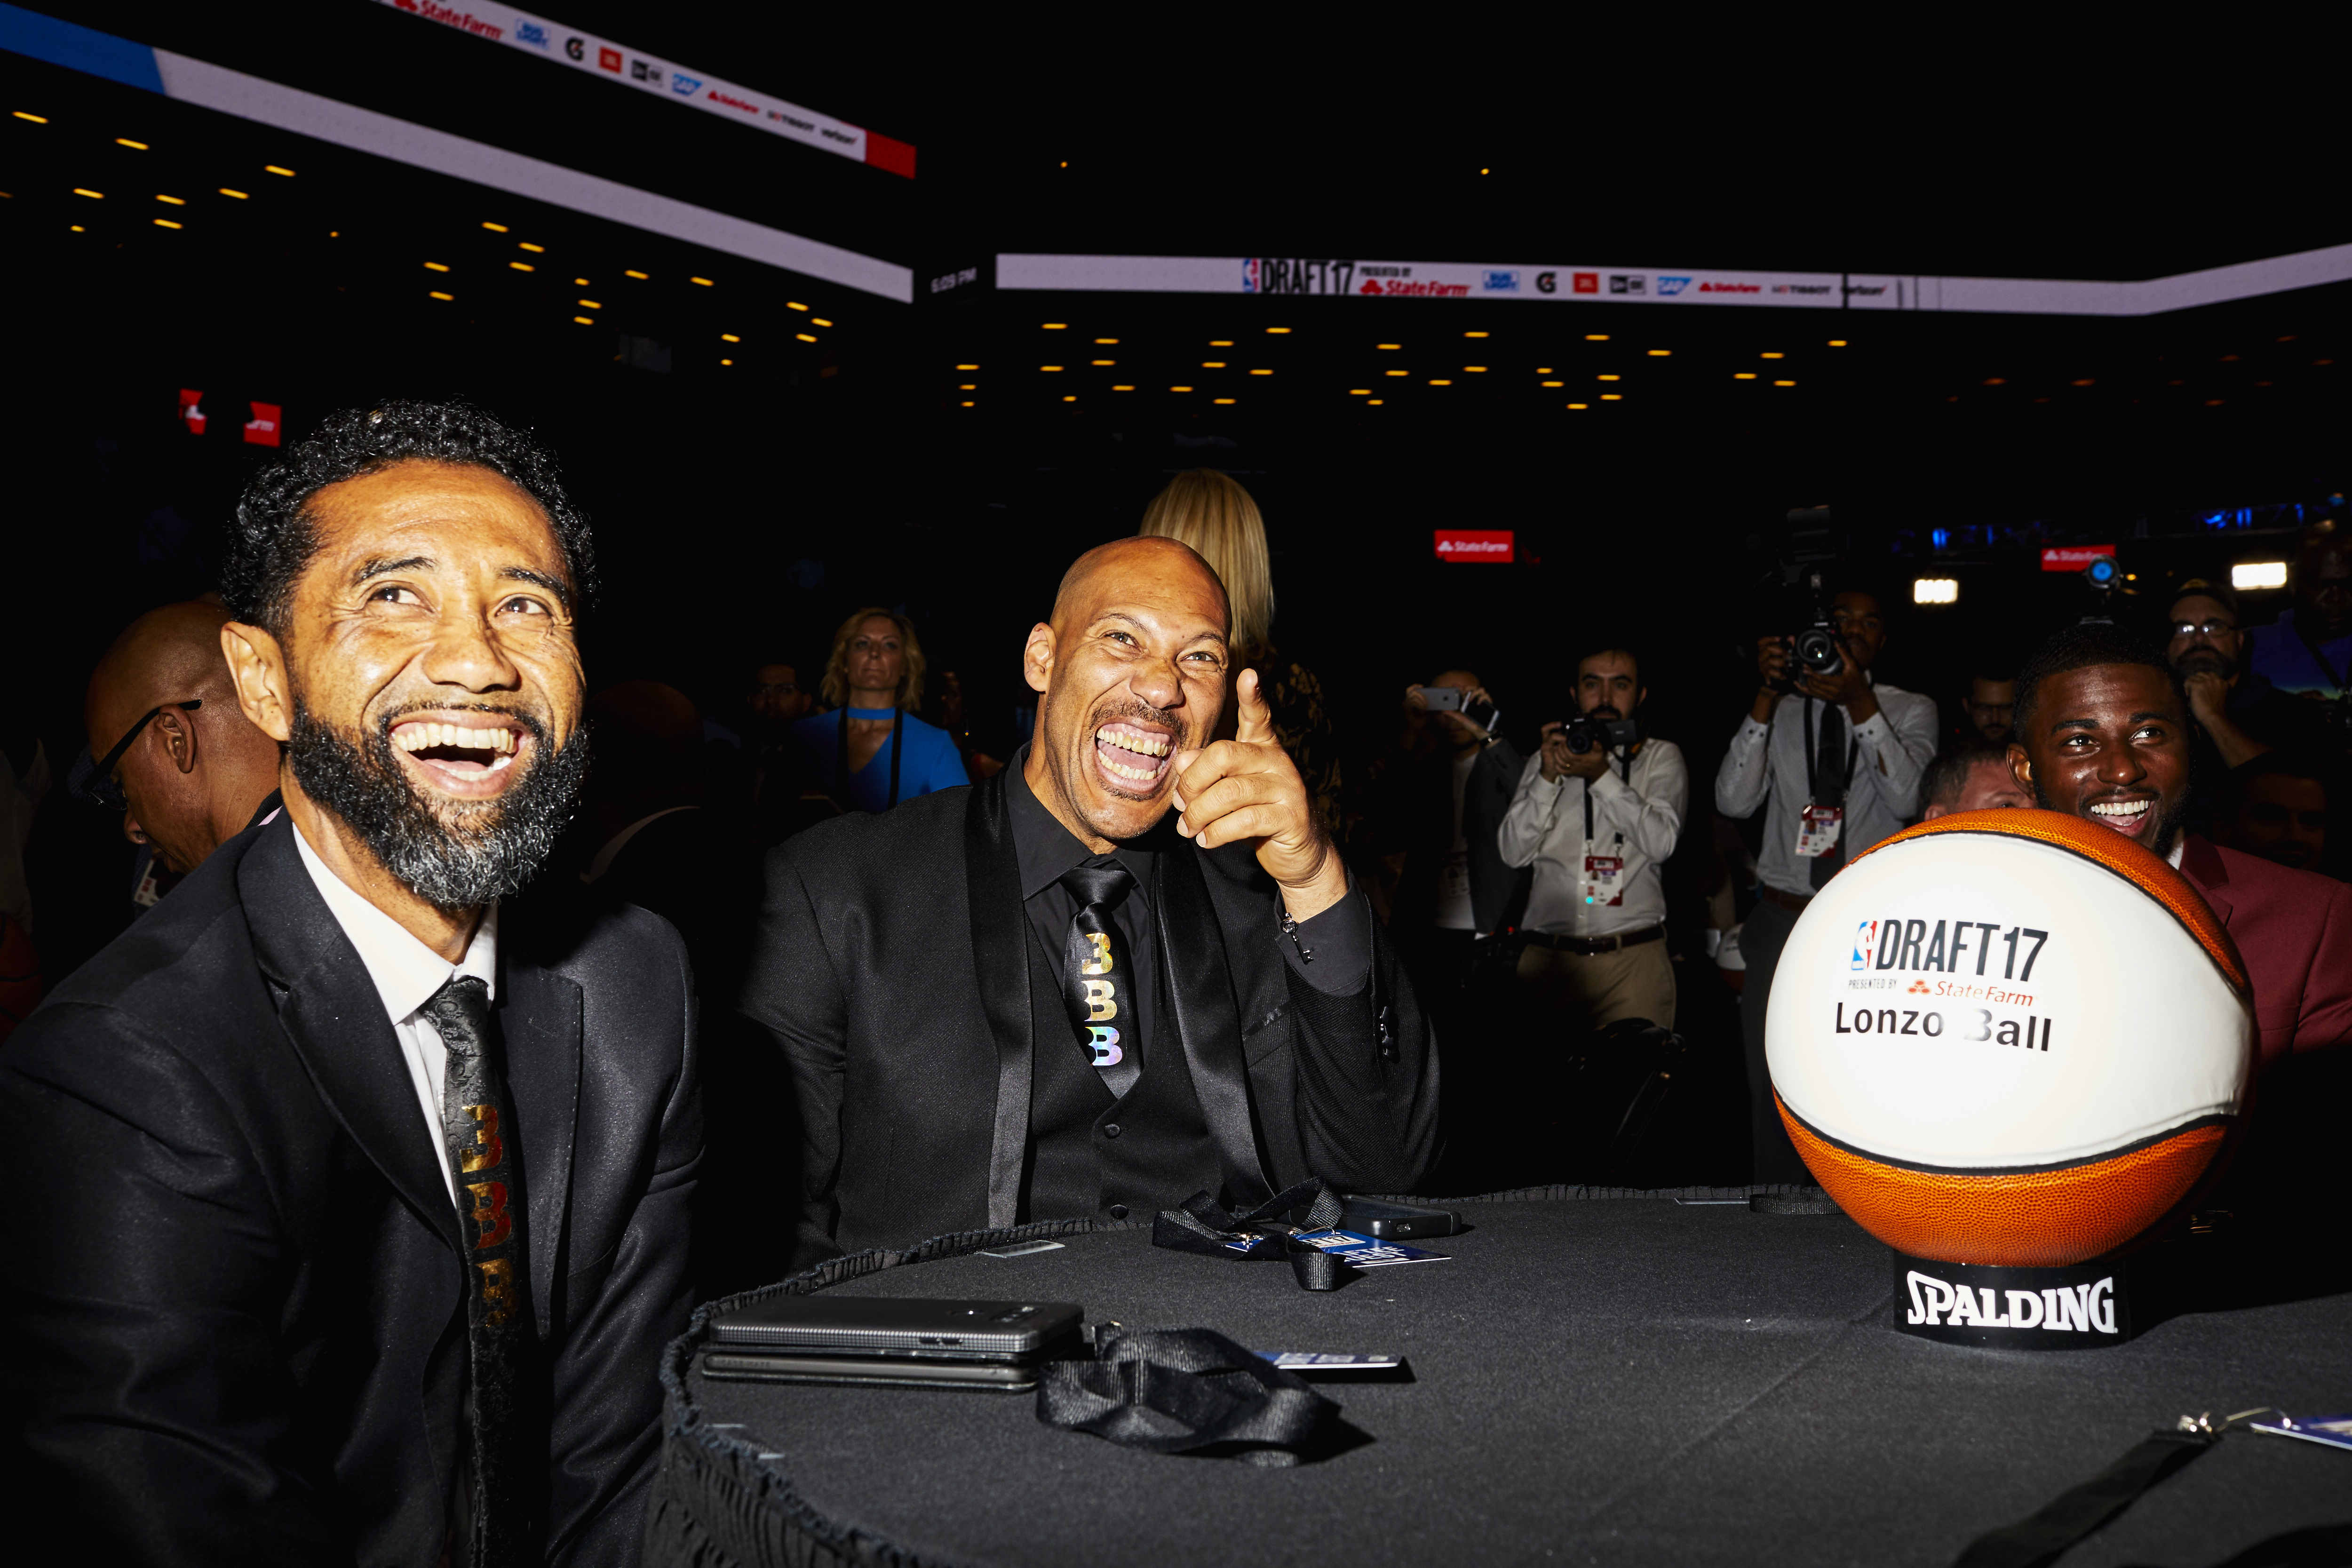 Did the 2017 NBA draft live up to the hype?